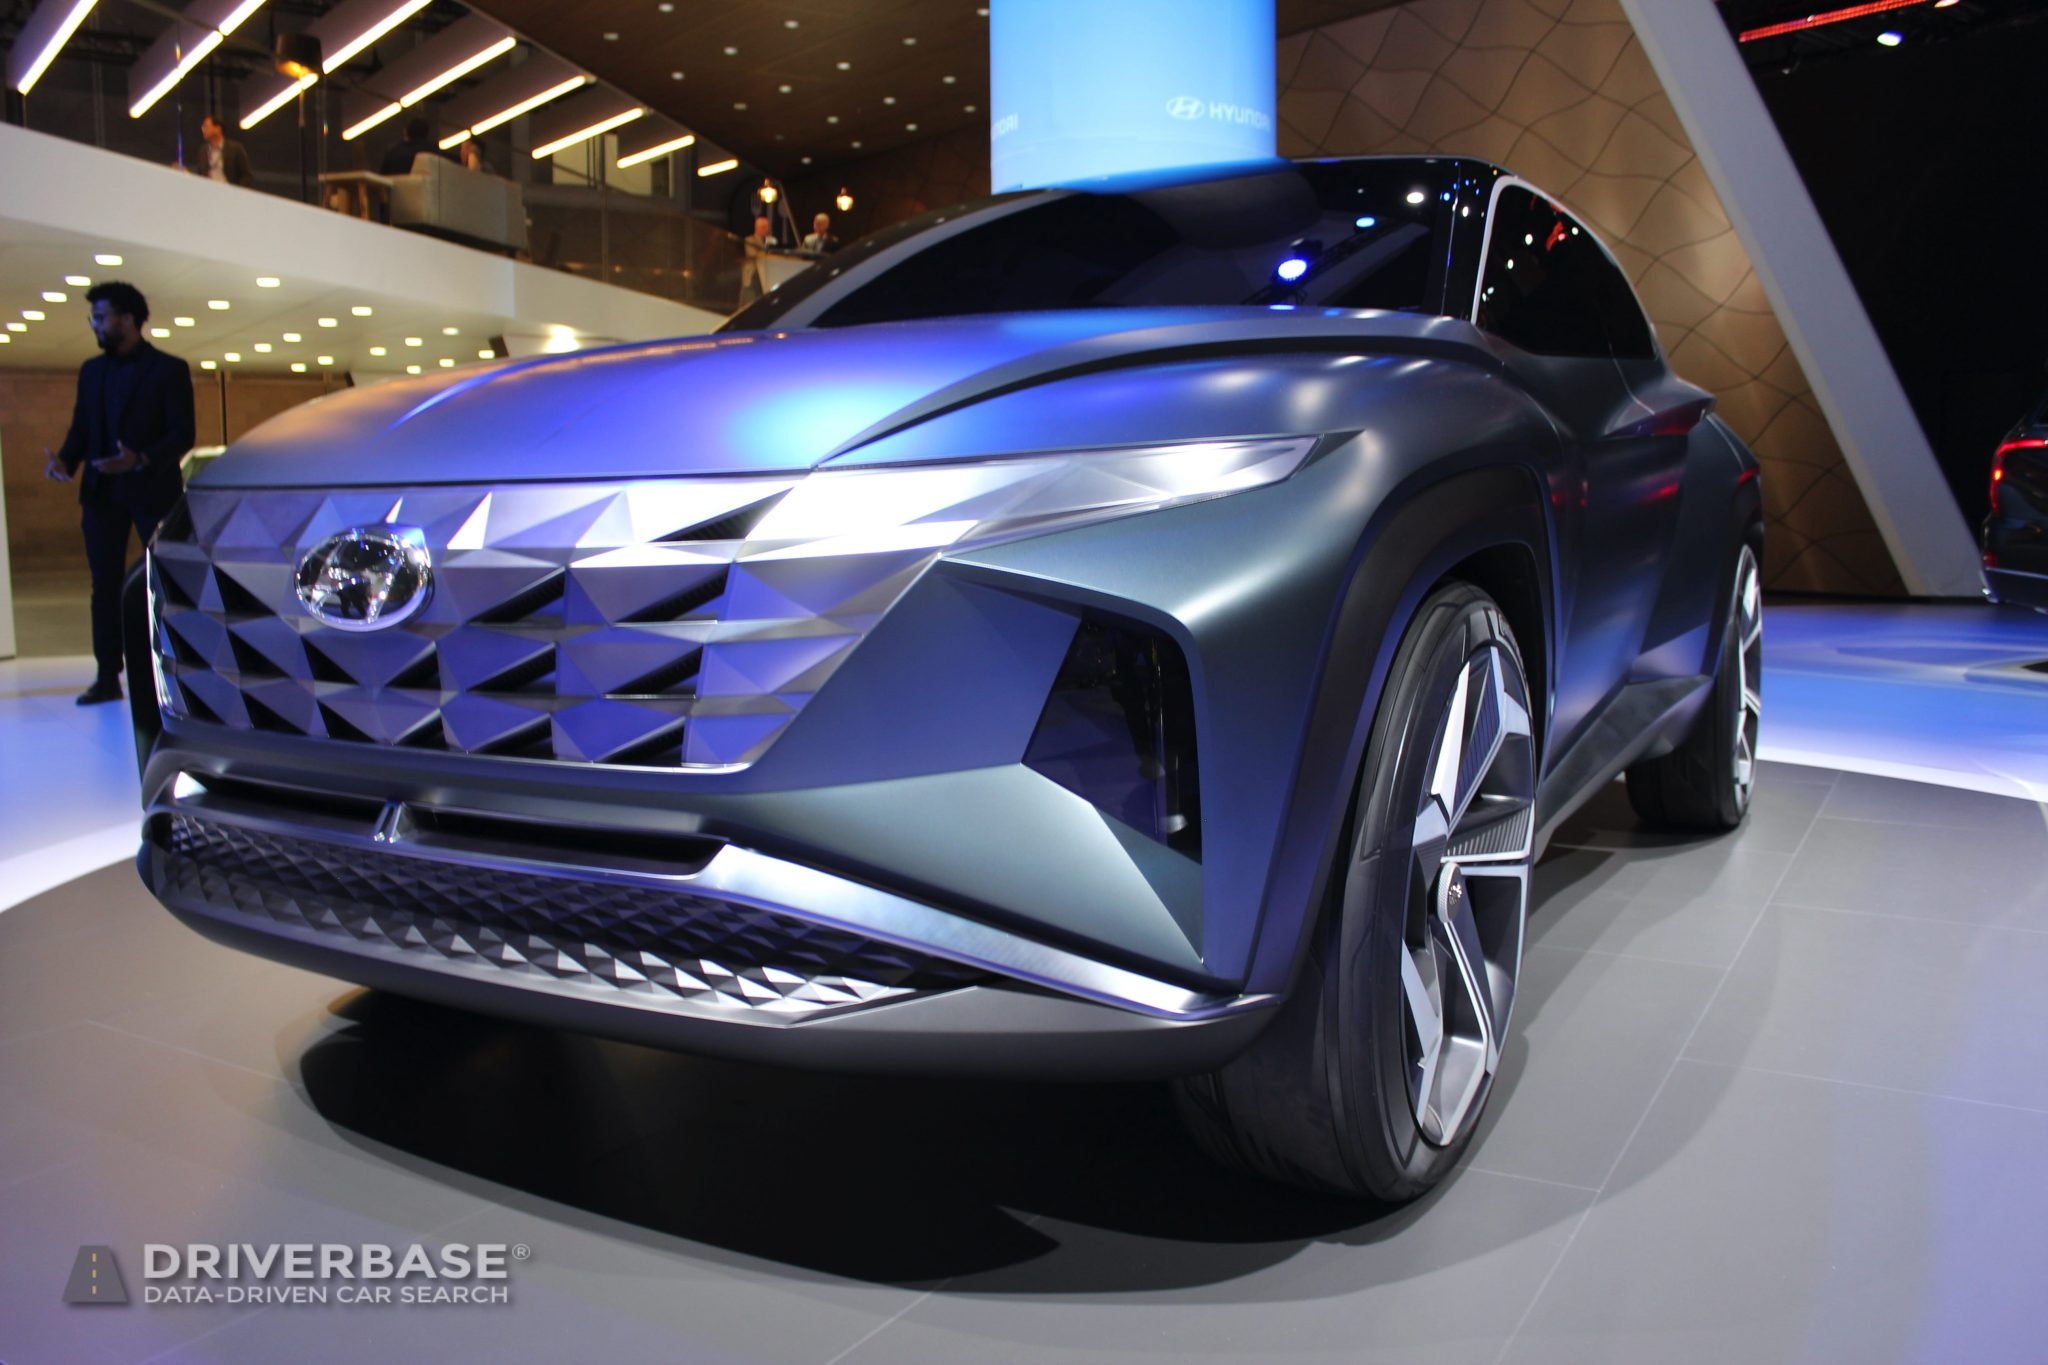 Hyundai Vision T Concept at the 2019 Los Angeles Auto Show